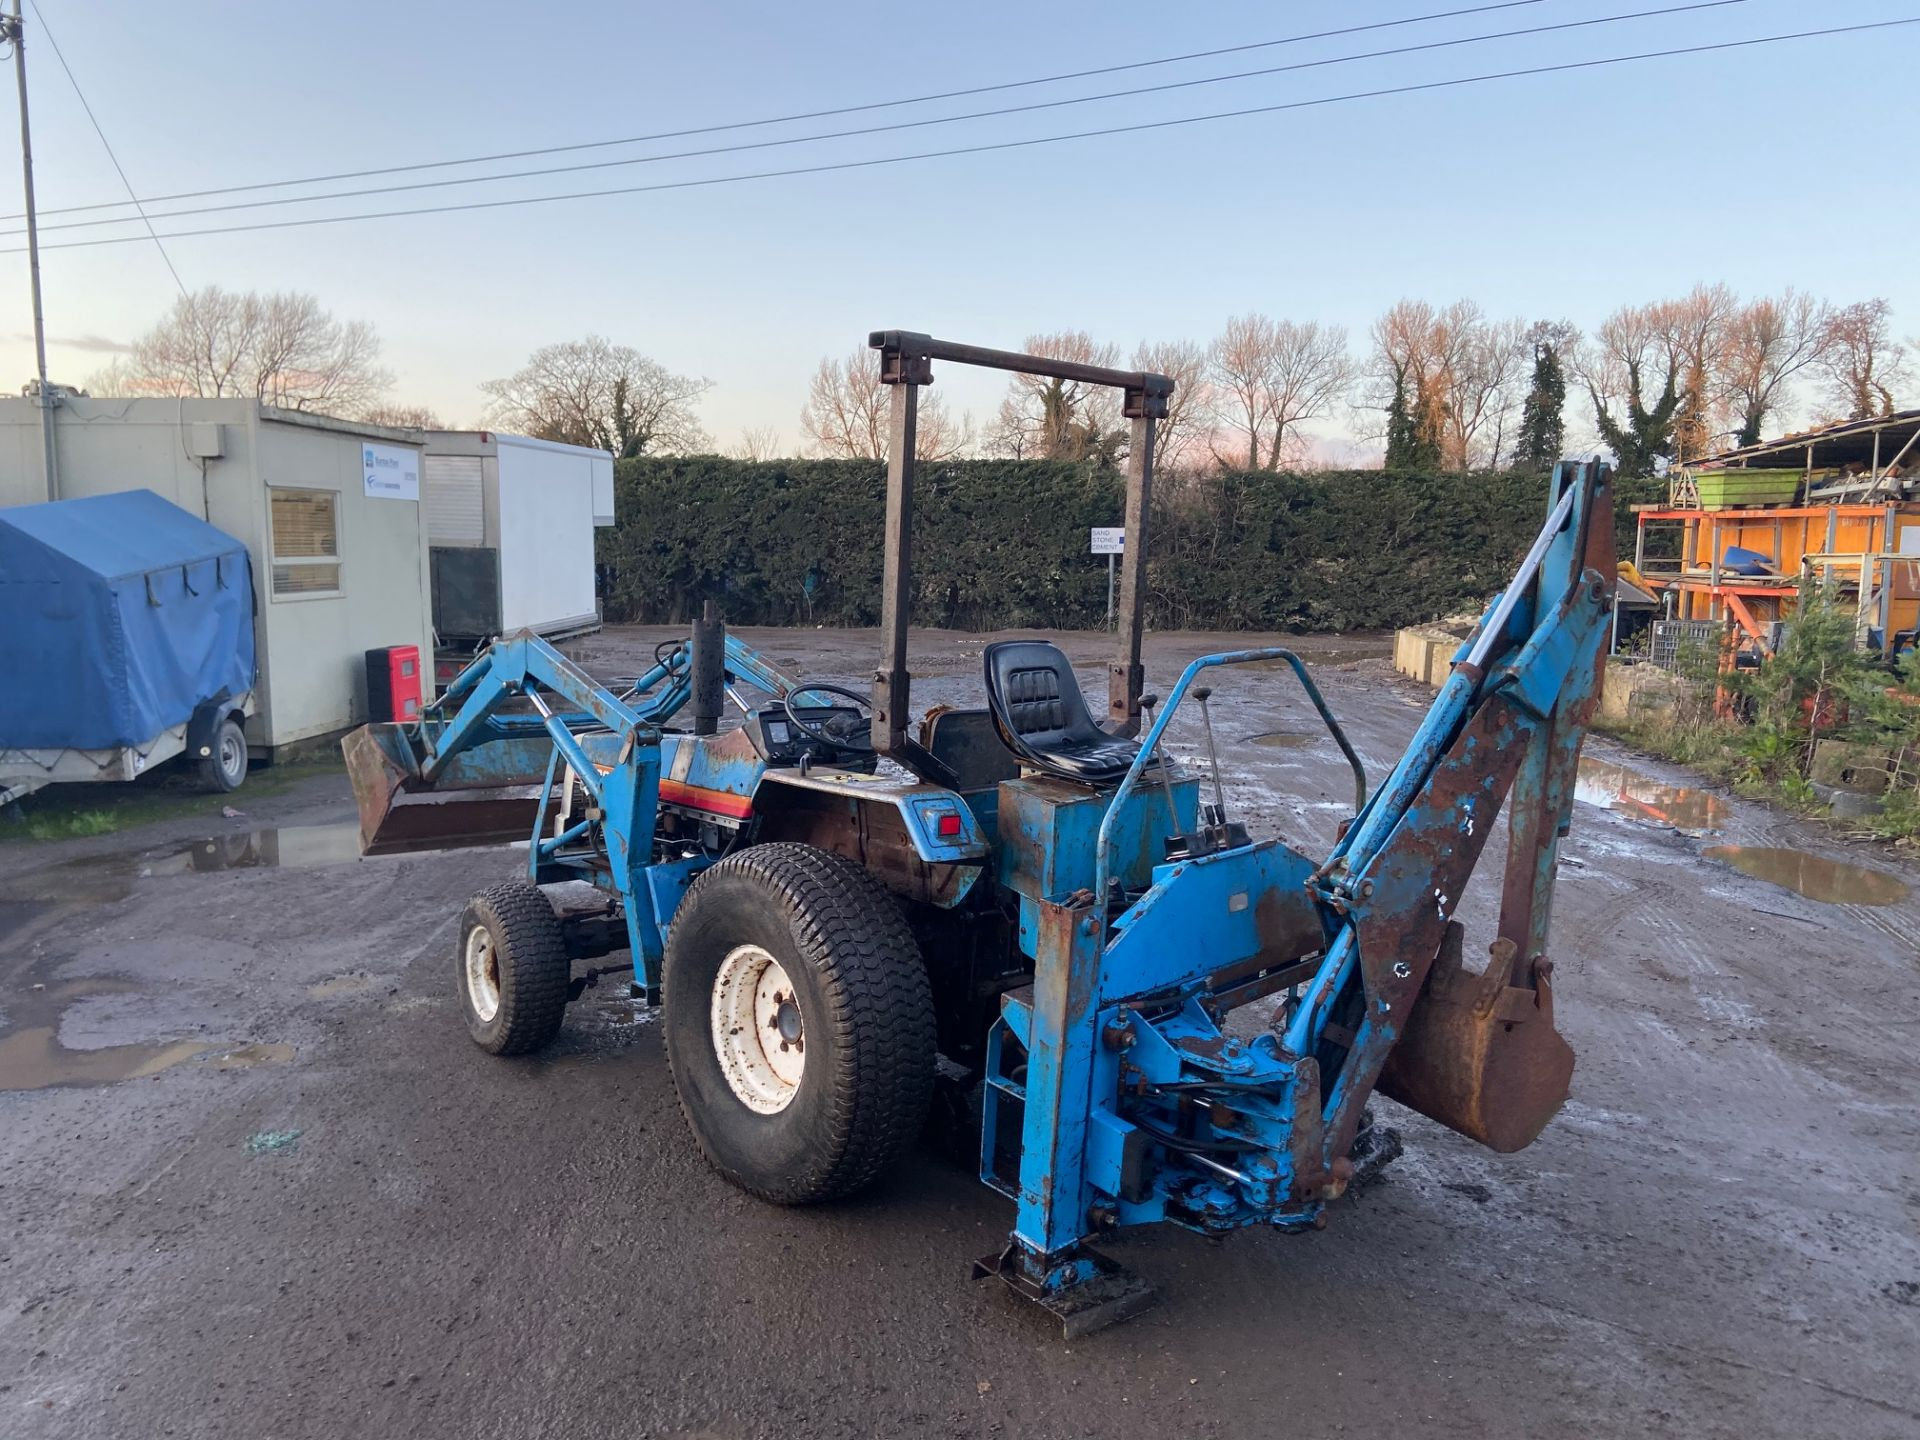 Lot 31 - MITSUBISHI MT300D TRACTOR WITH LOADER BACKHOE 4X4, GRASS TYRES, 30 HP *PLUS VAT*